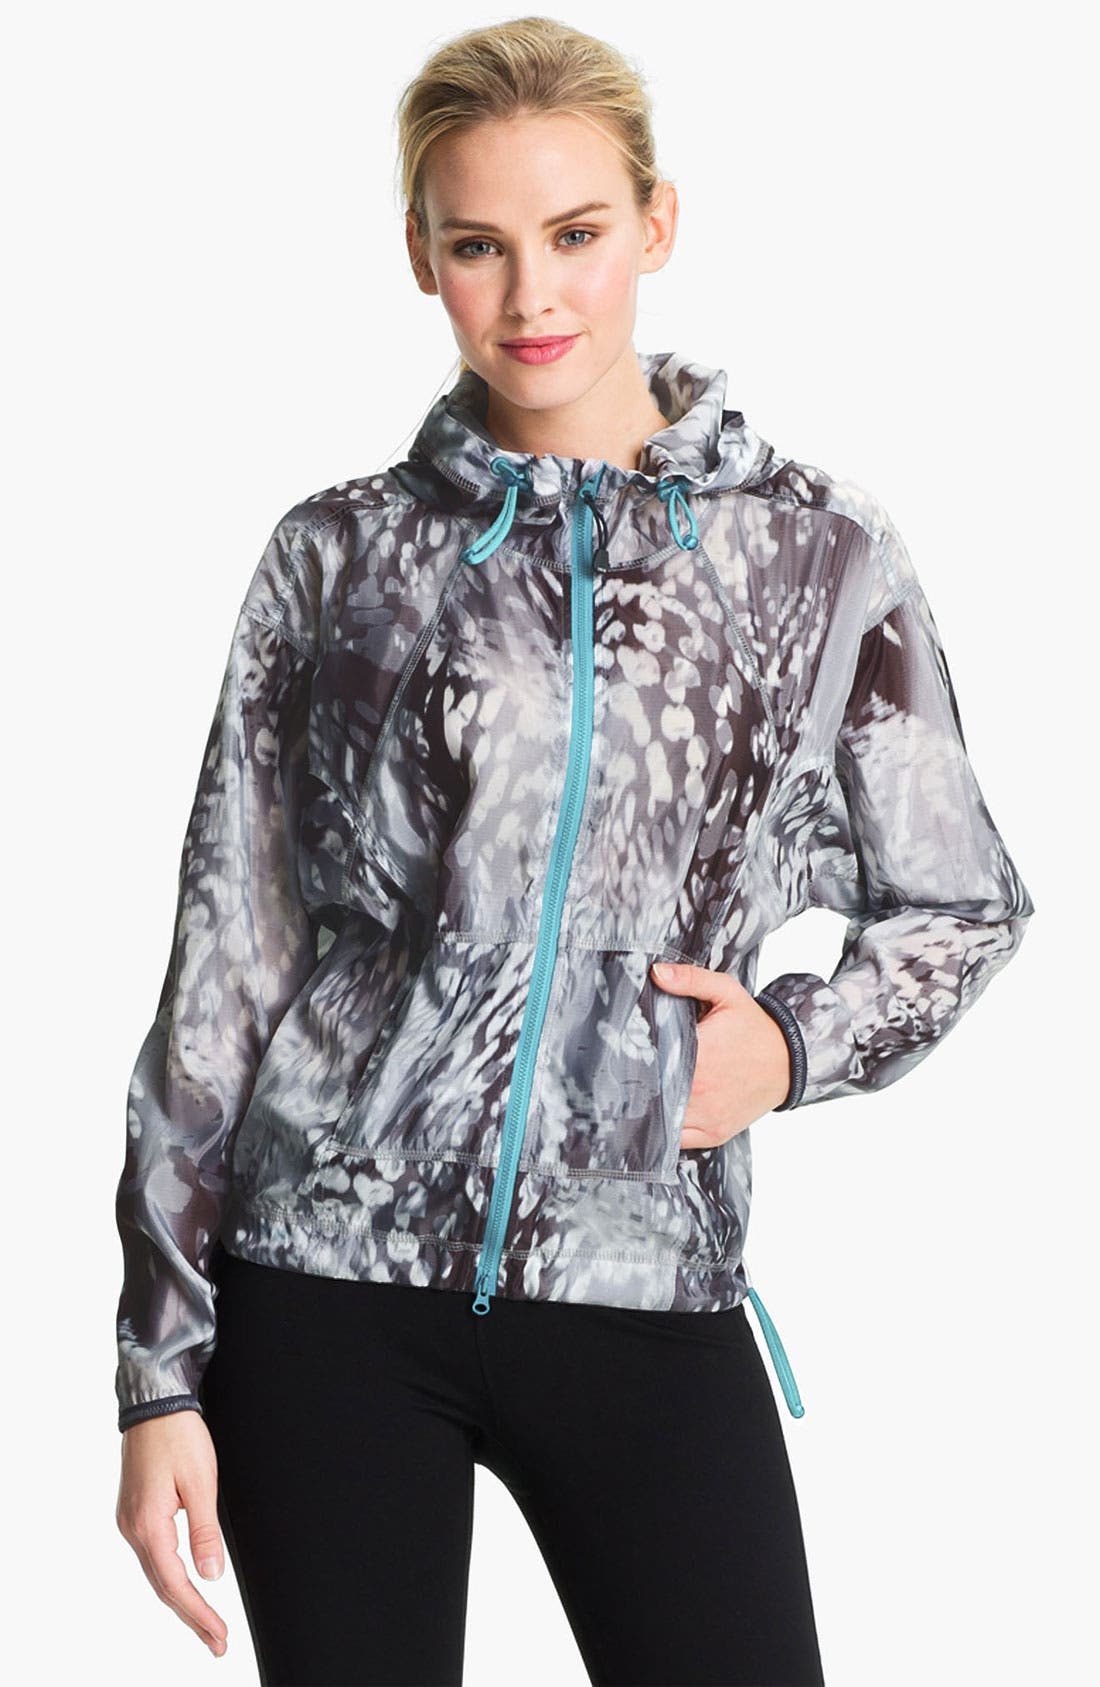 Alternate Image 1 Selected - Zella 'Sprint' Print Jacket